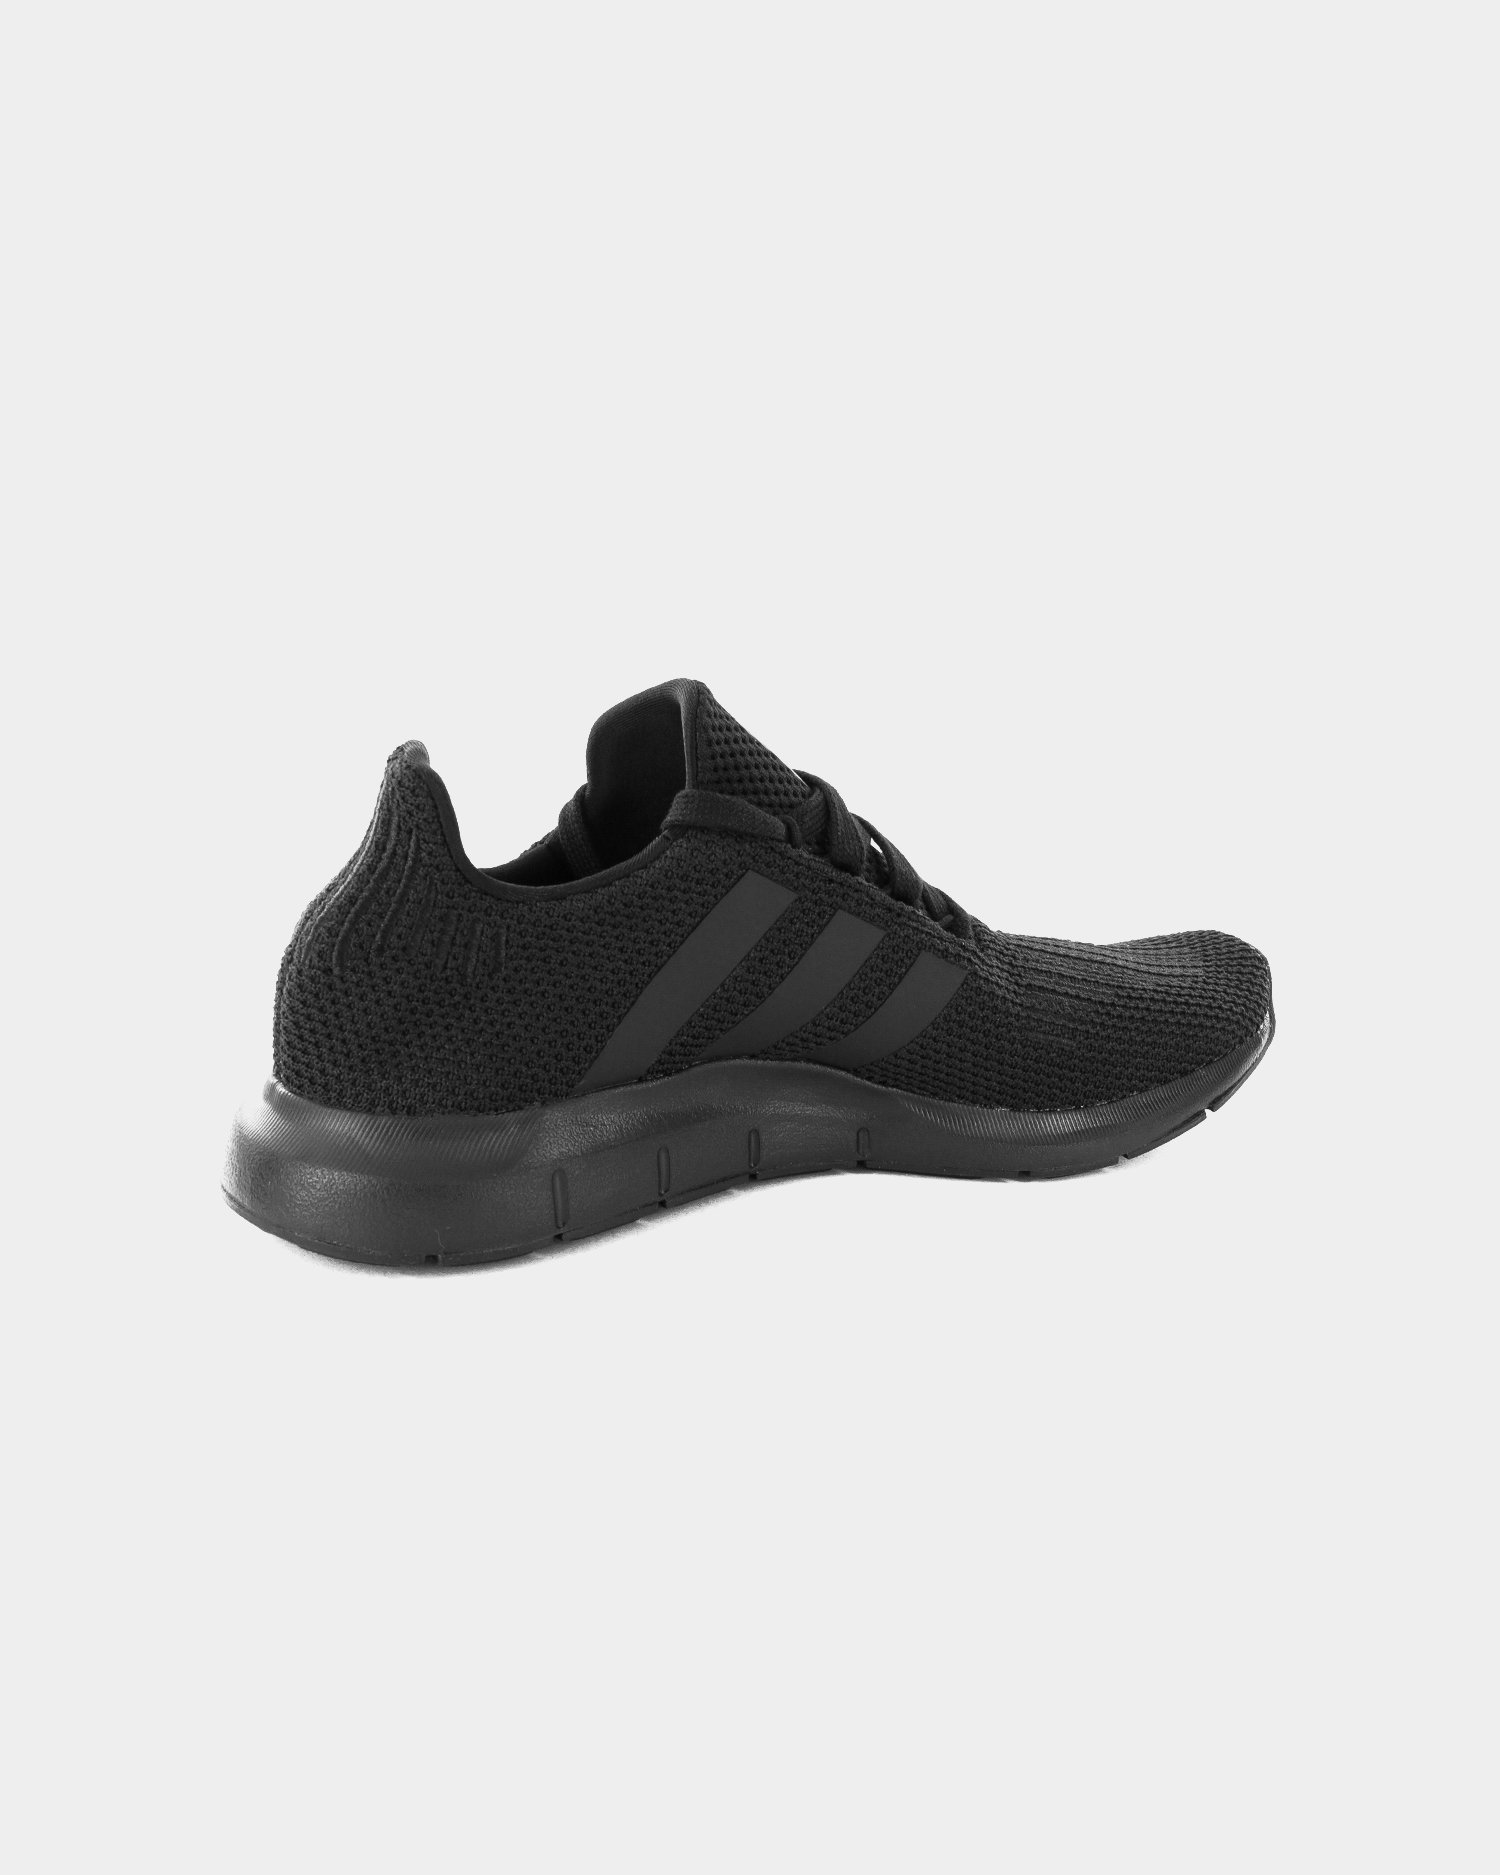 Adidas Swift Run BlackBlack